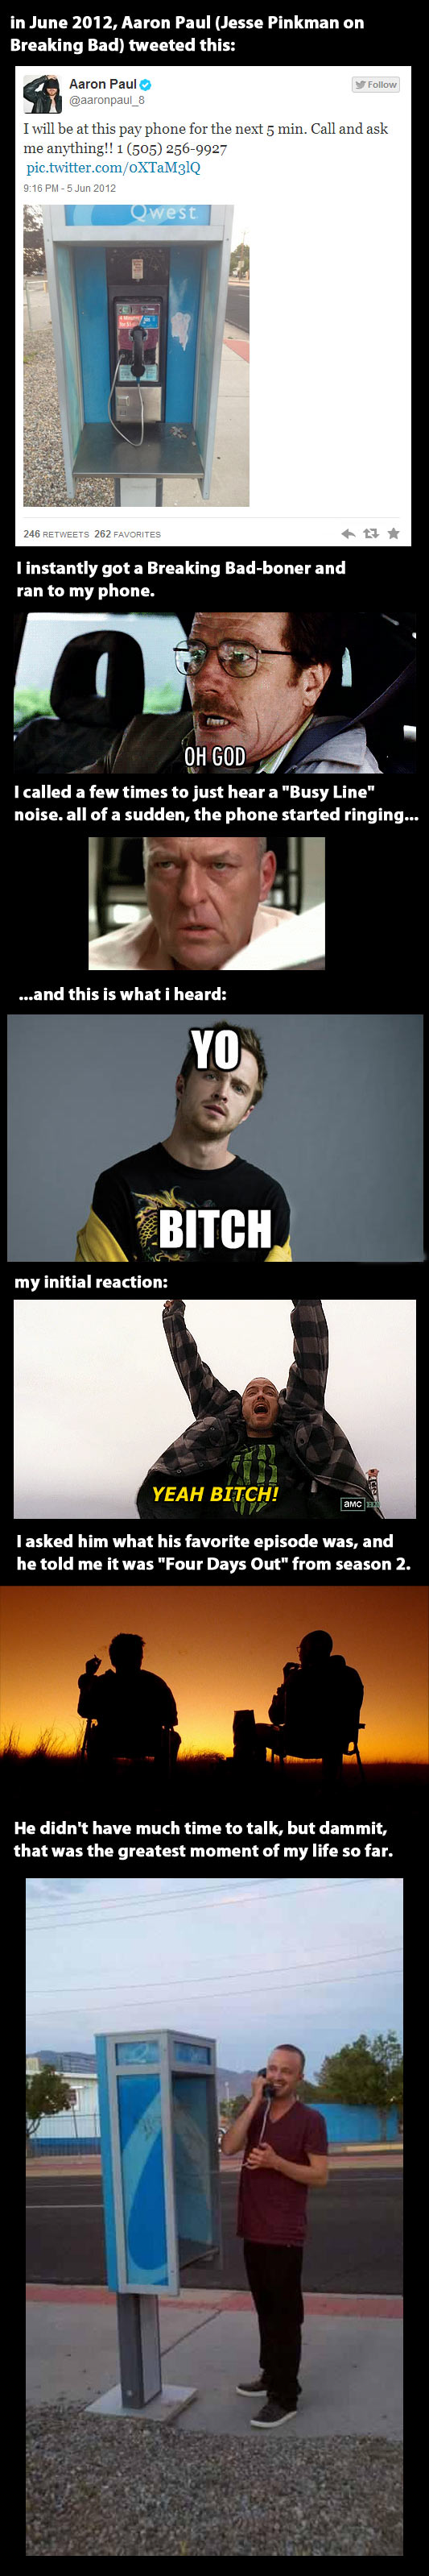 funny-Jesse-Pinkman-Breaking-Bad-Tweeter